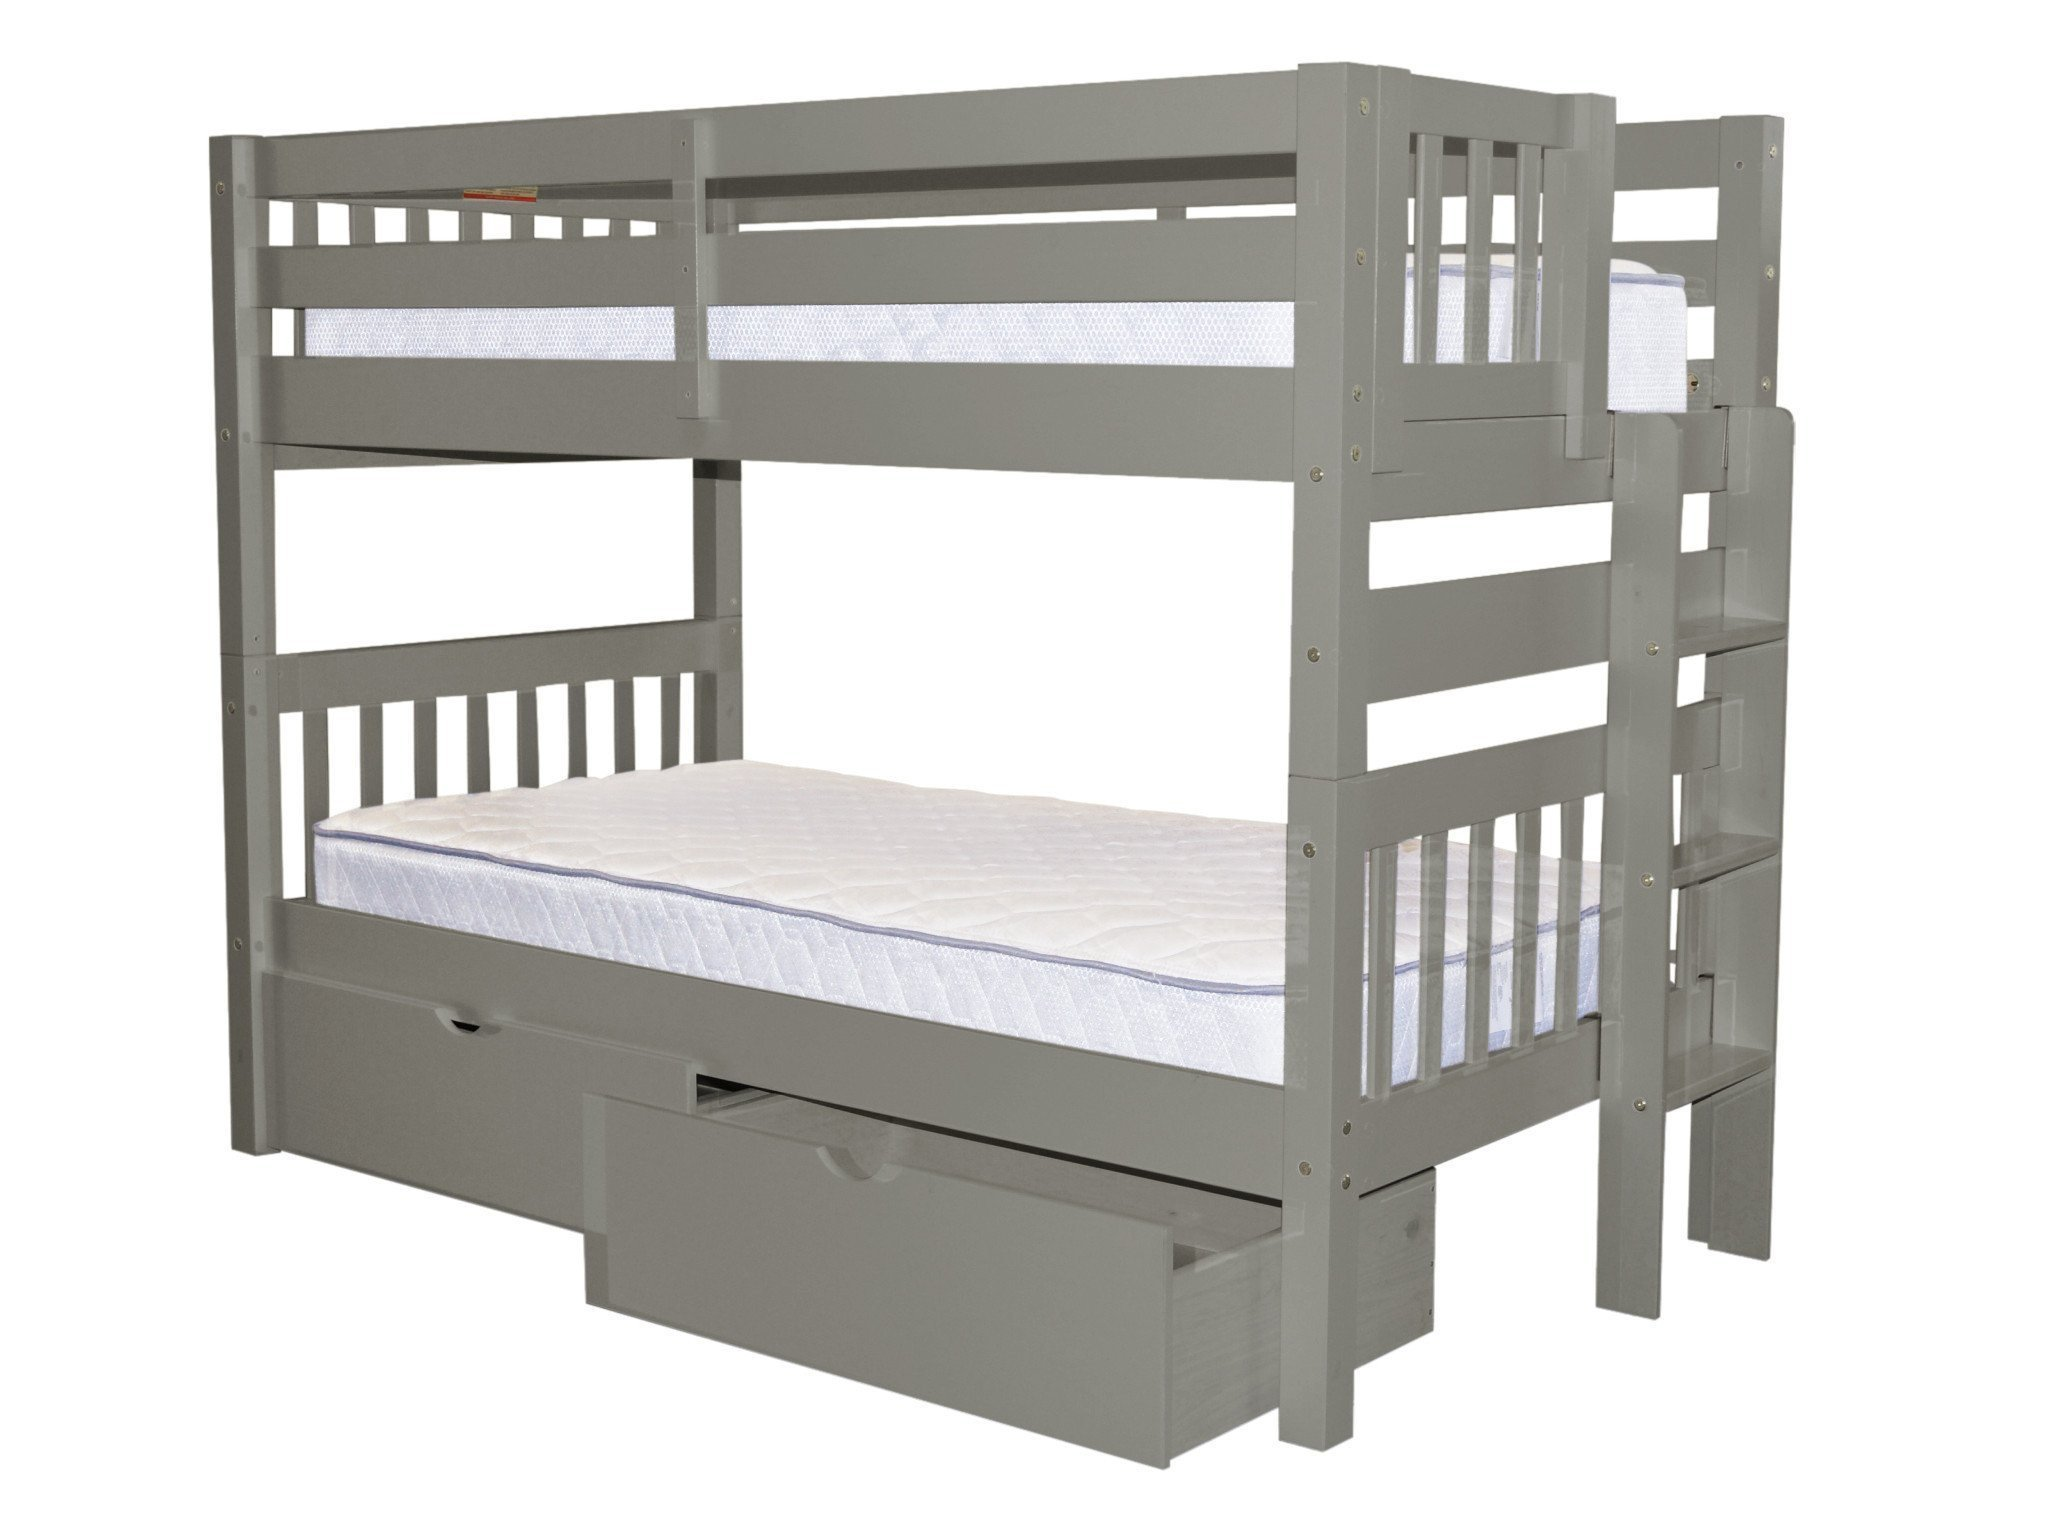 Bedz King Bunk Beds Twin Over Twin Mission Style With End Ladder And